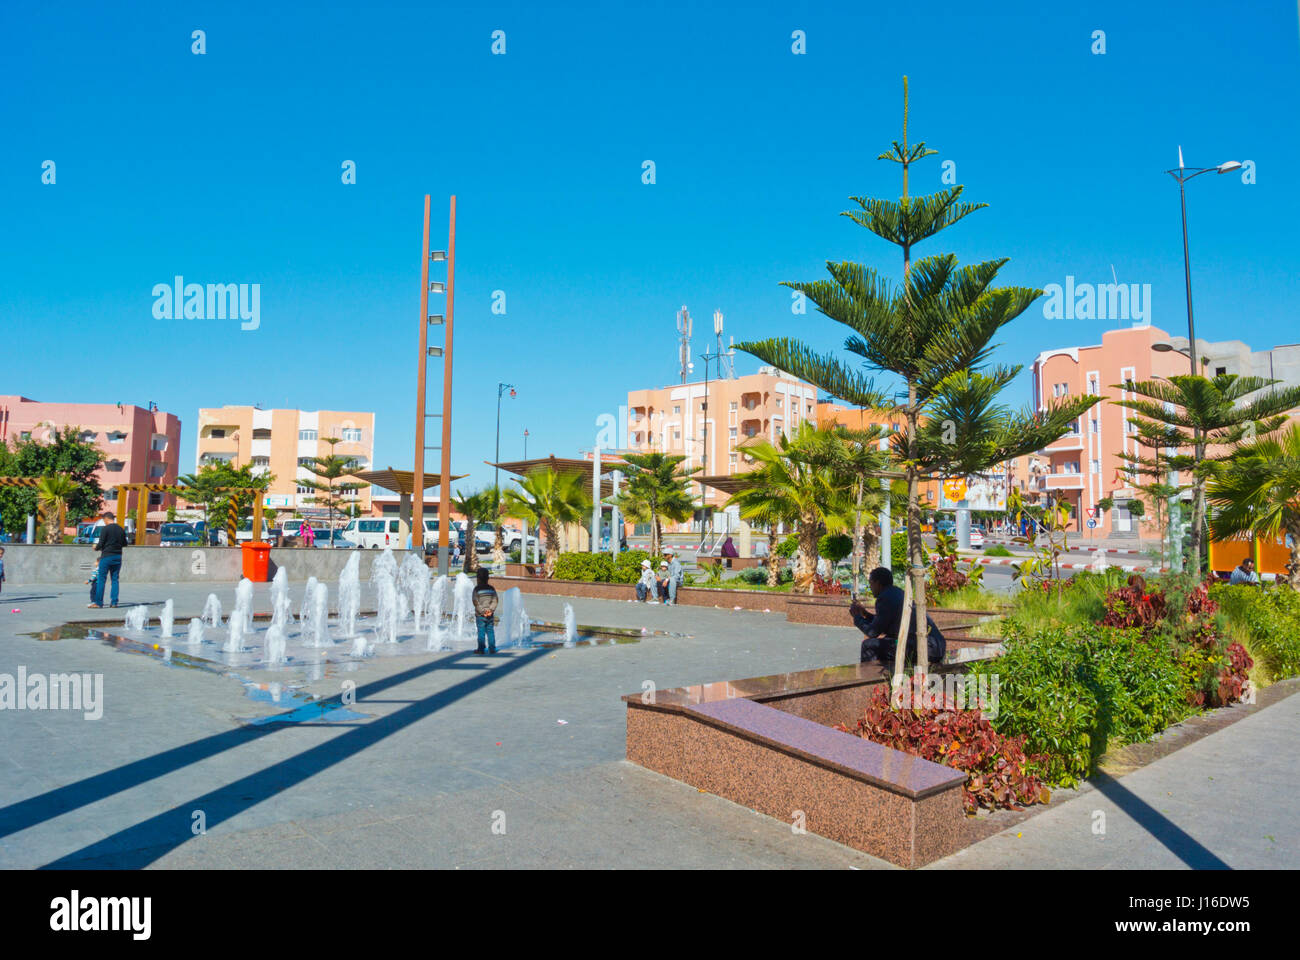 Place de la Resistance, Laayoune, El Aioun, Western Sahara, administered by Morocco - Stock Image